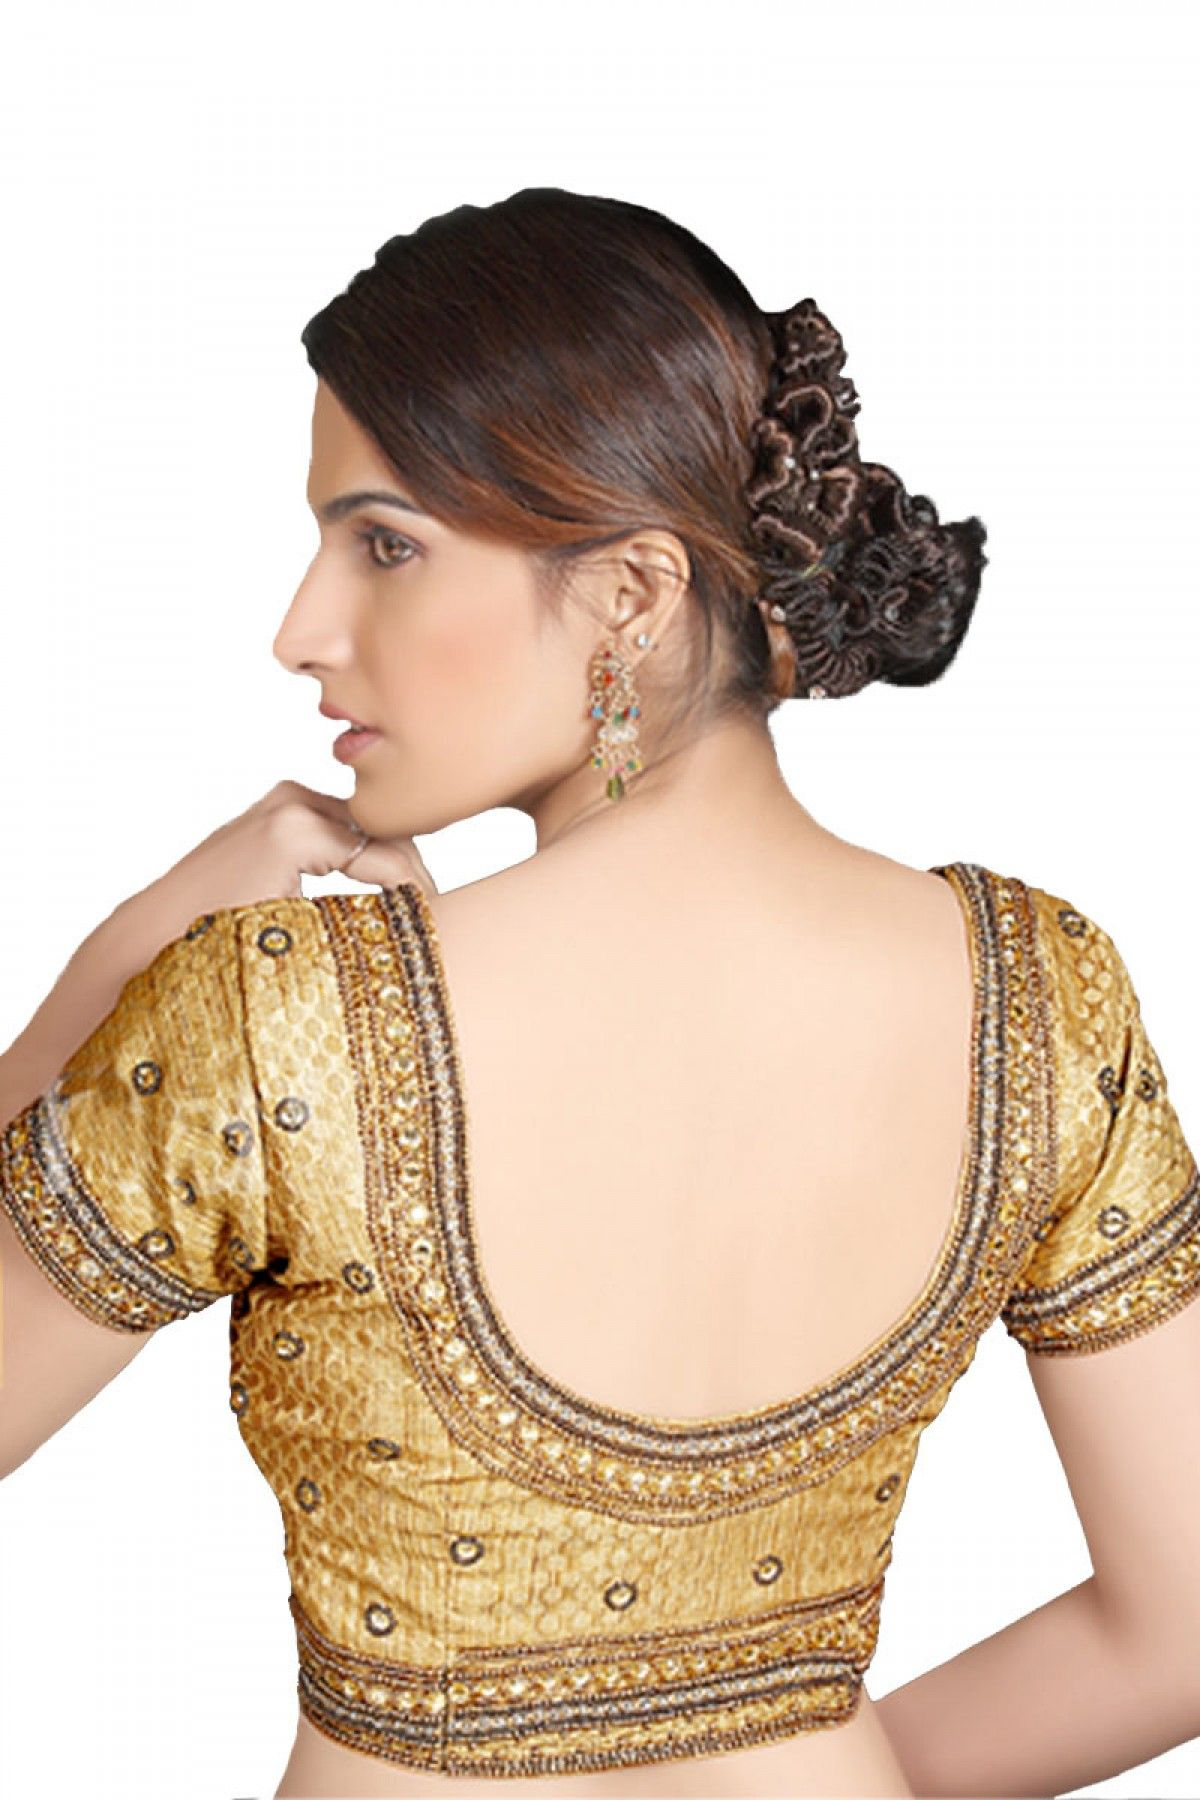 Beige golden brocade blouse blouse designs blouse designs for sarees - Brocade In Cowl Ideal For Wedding Find This Pin And More On Blouse Back Designs